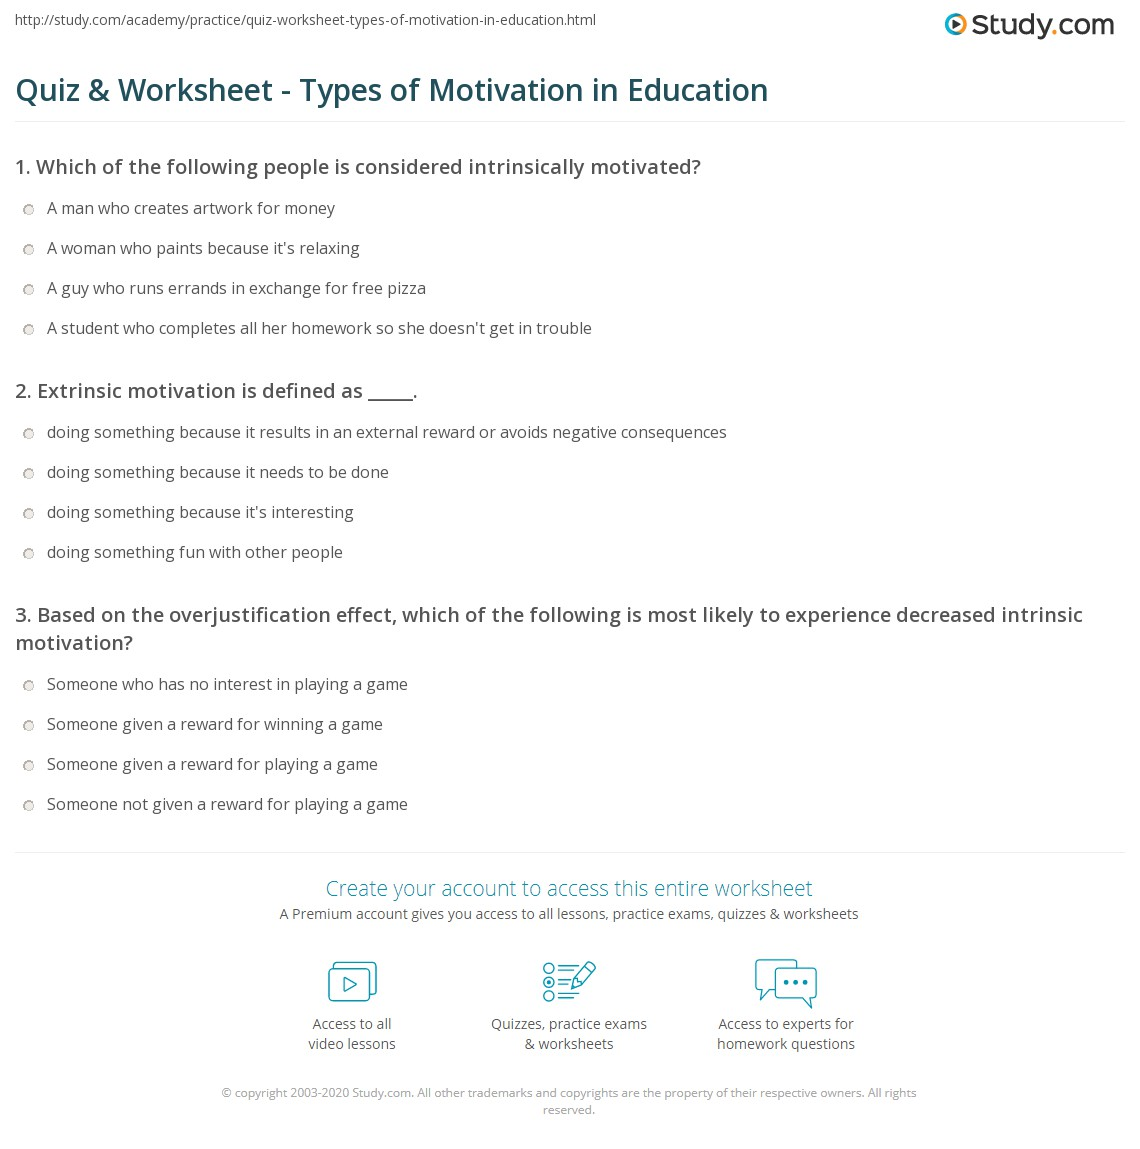 quiz worksheet types of motivation in education com print intrinsic and extrinsic motivation in education definition examples worksheet